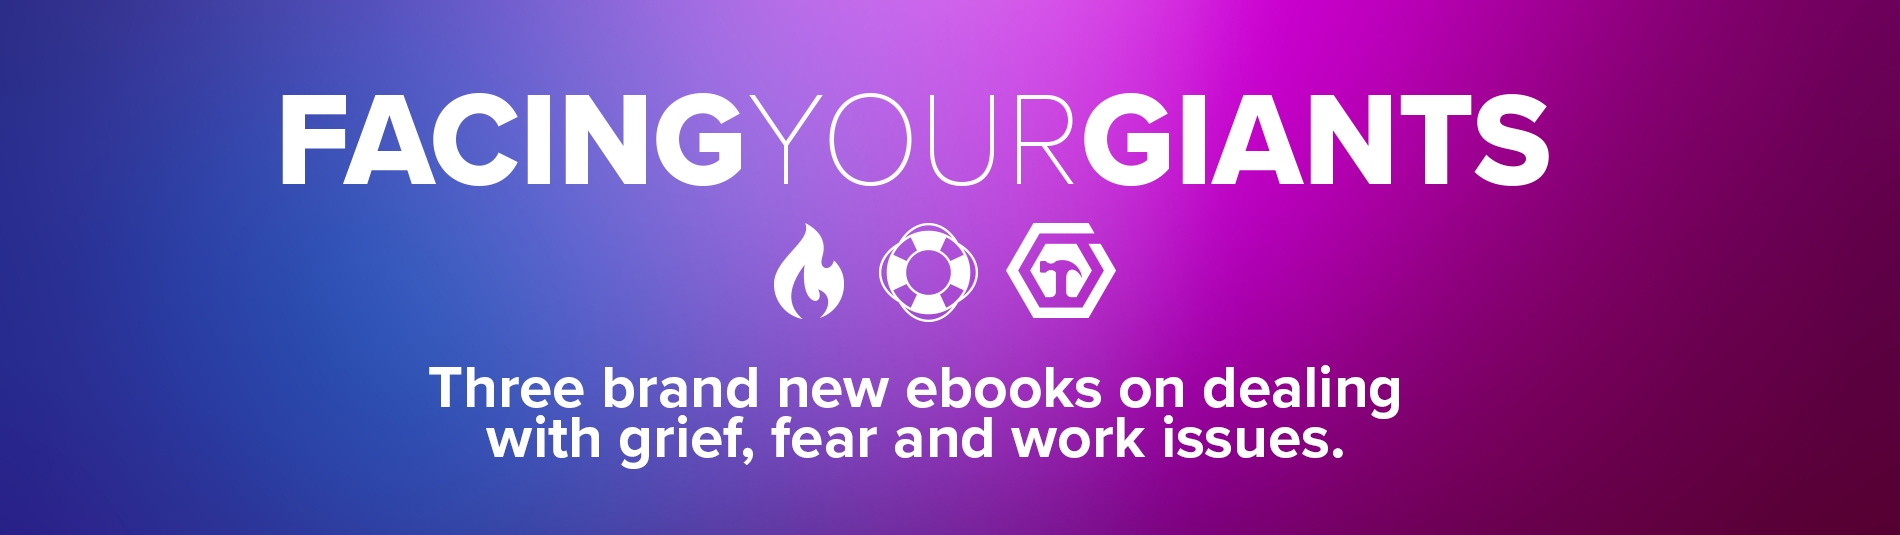 Facing your giants'.  Three brand new ebooks on dealing with grief, fear and work issues.